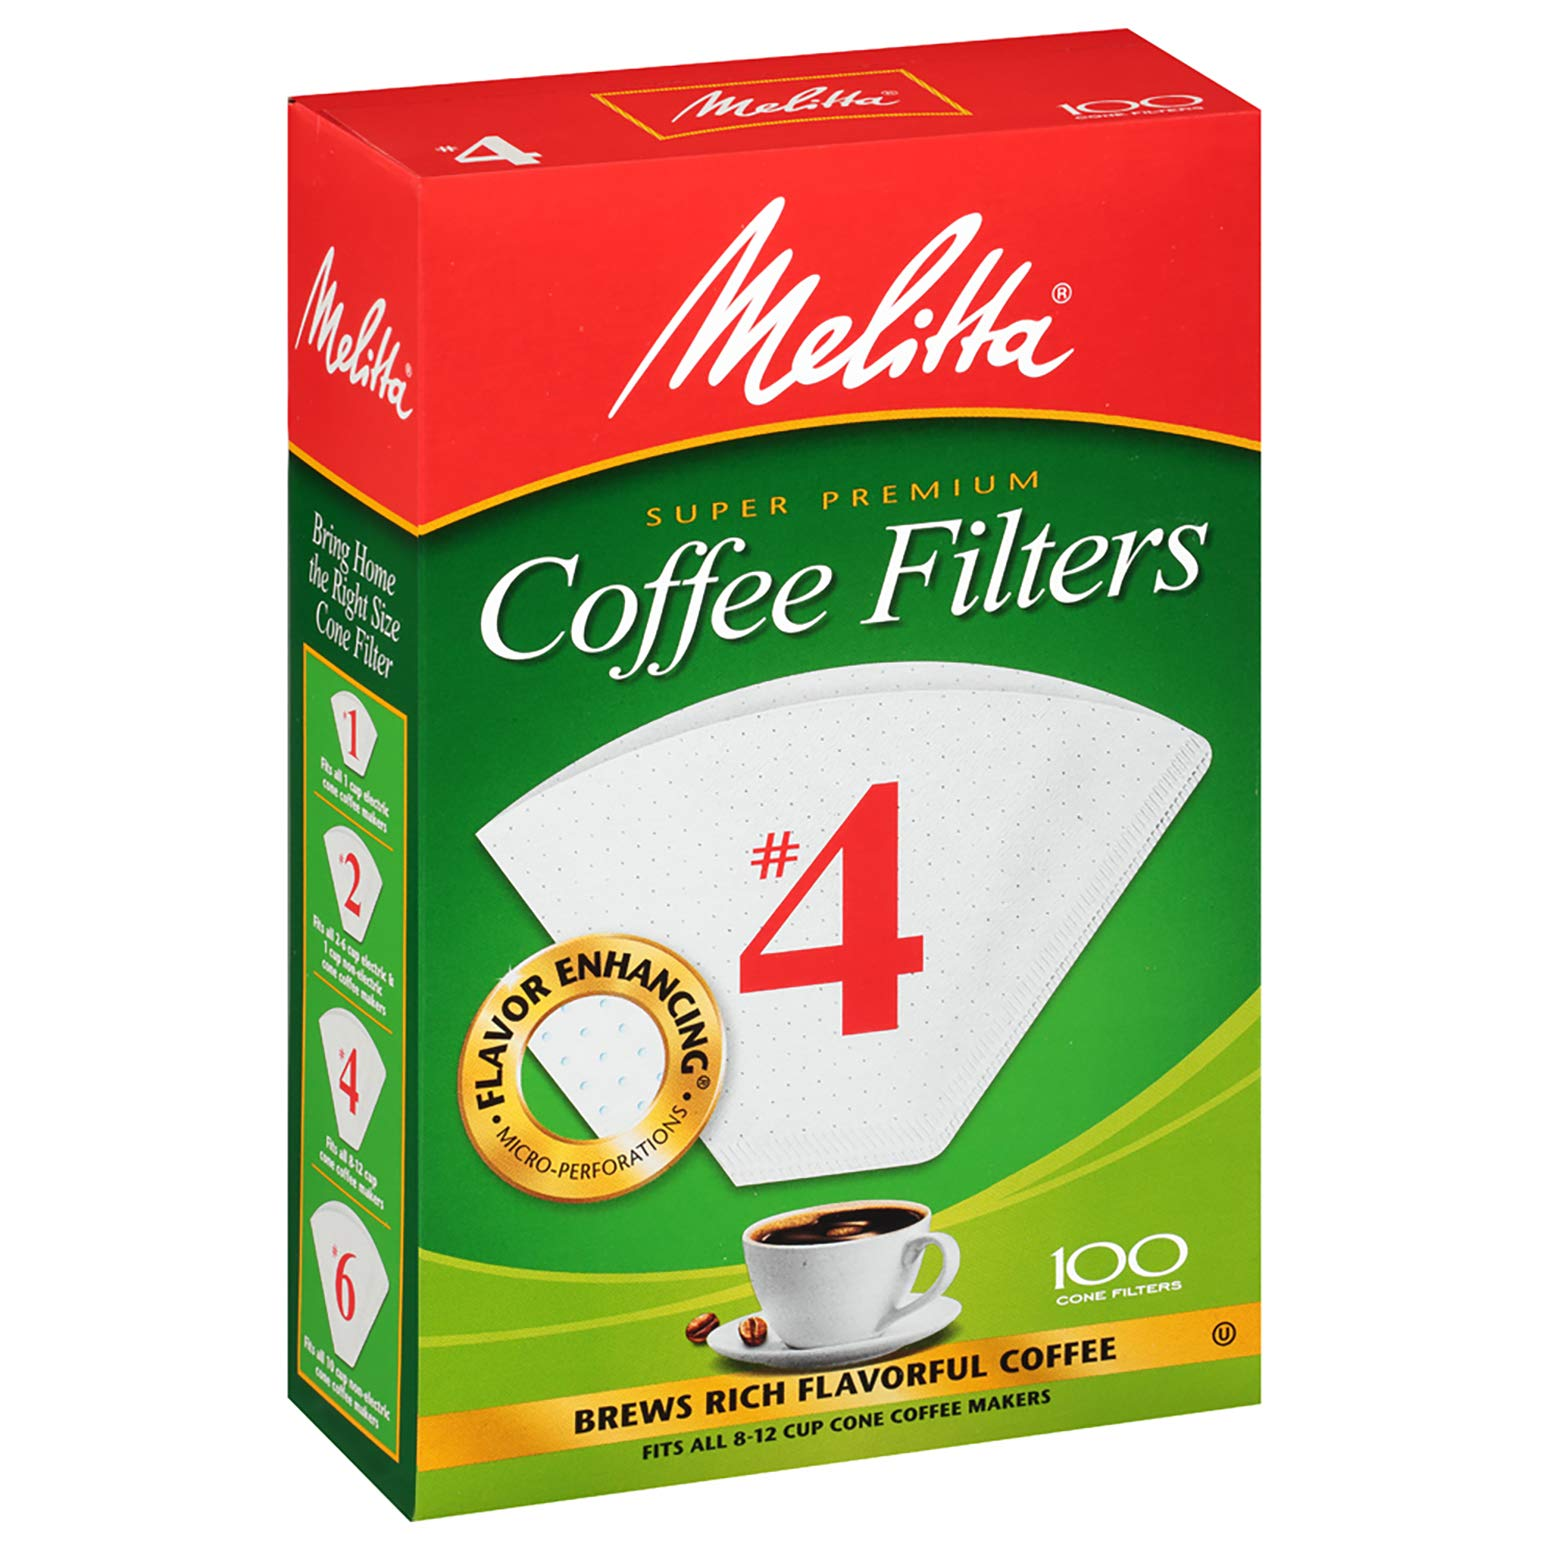 Melitta (624102C) #4 Super Premium Cone Coffee Filters, White, 100 Count (Pack of 12) Replacement Coffee Maker Filters